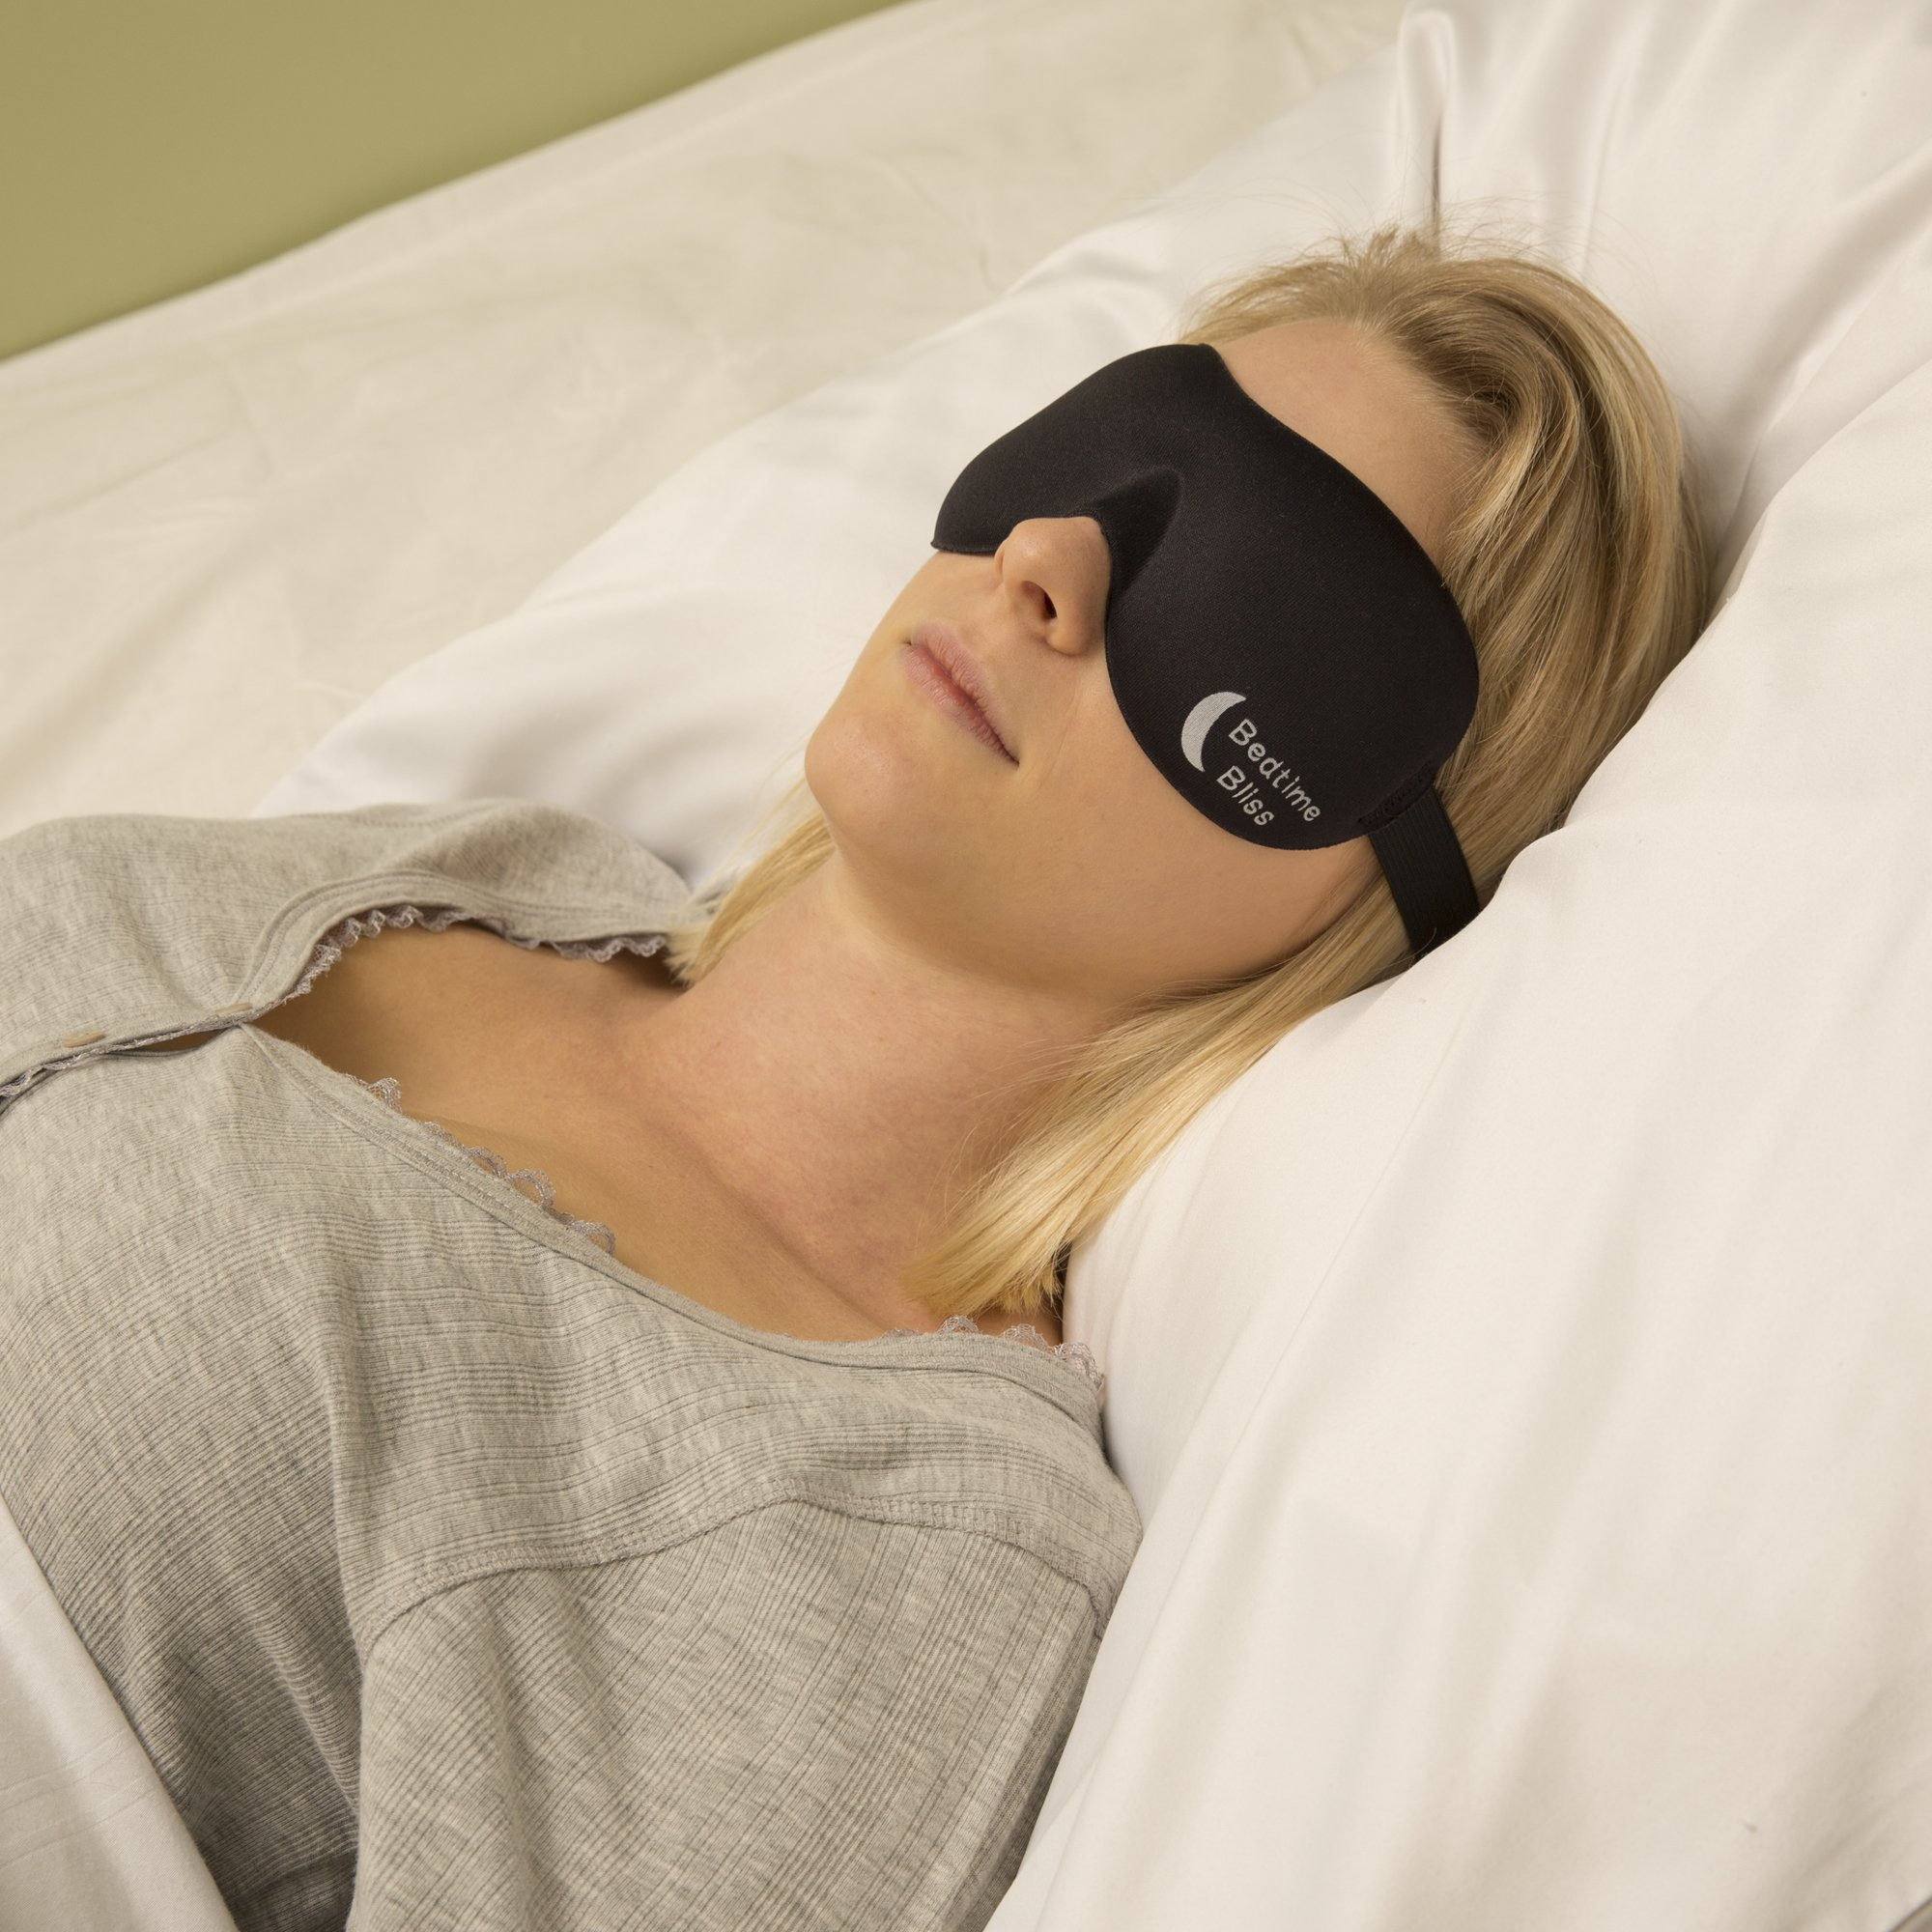 Sleep Mask by Bedtime Bliss® - Contoured & Comfortable With Moldex® Ear Plug Set. Includes Carry Pouch for Eye Mask and Ear Plugs - Great for Travel, Shift Work & Meditation (Black) by Bedtime Bliss (Image #5)